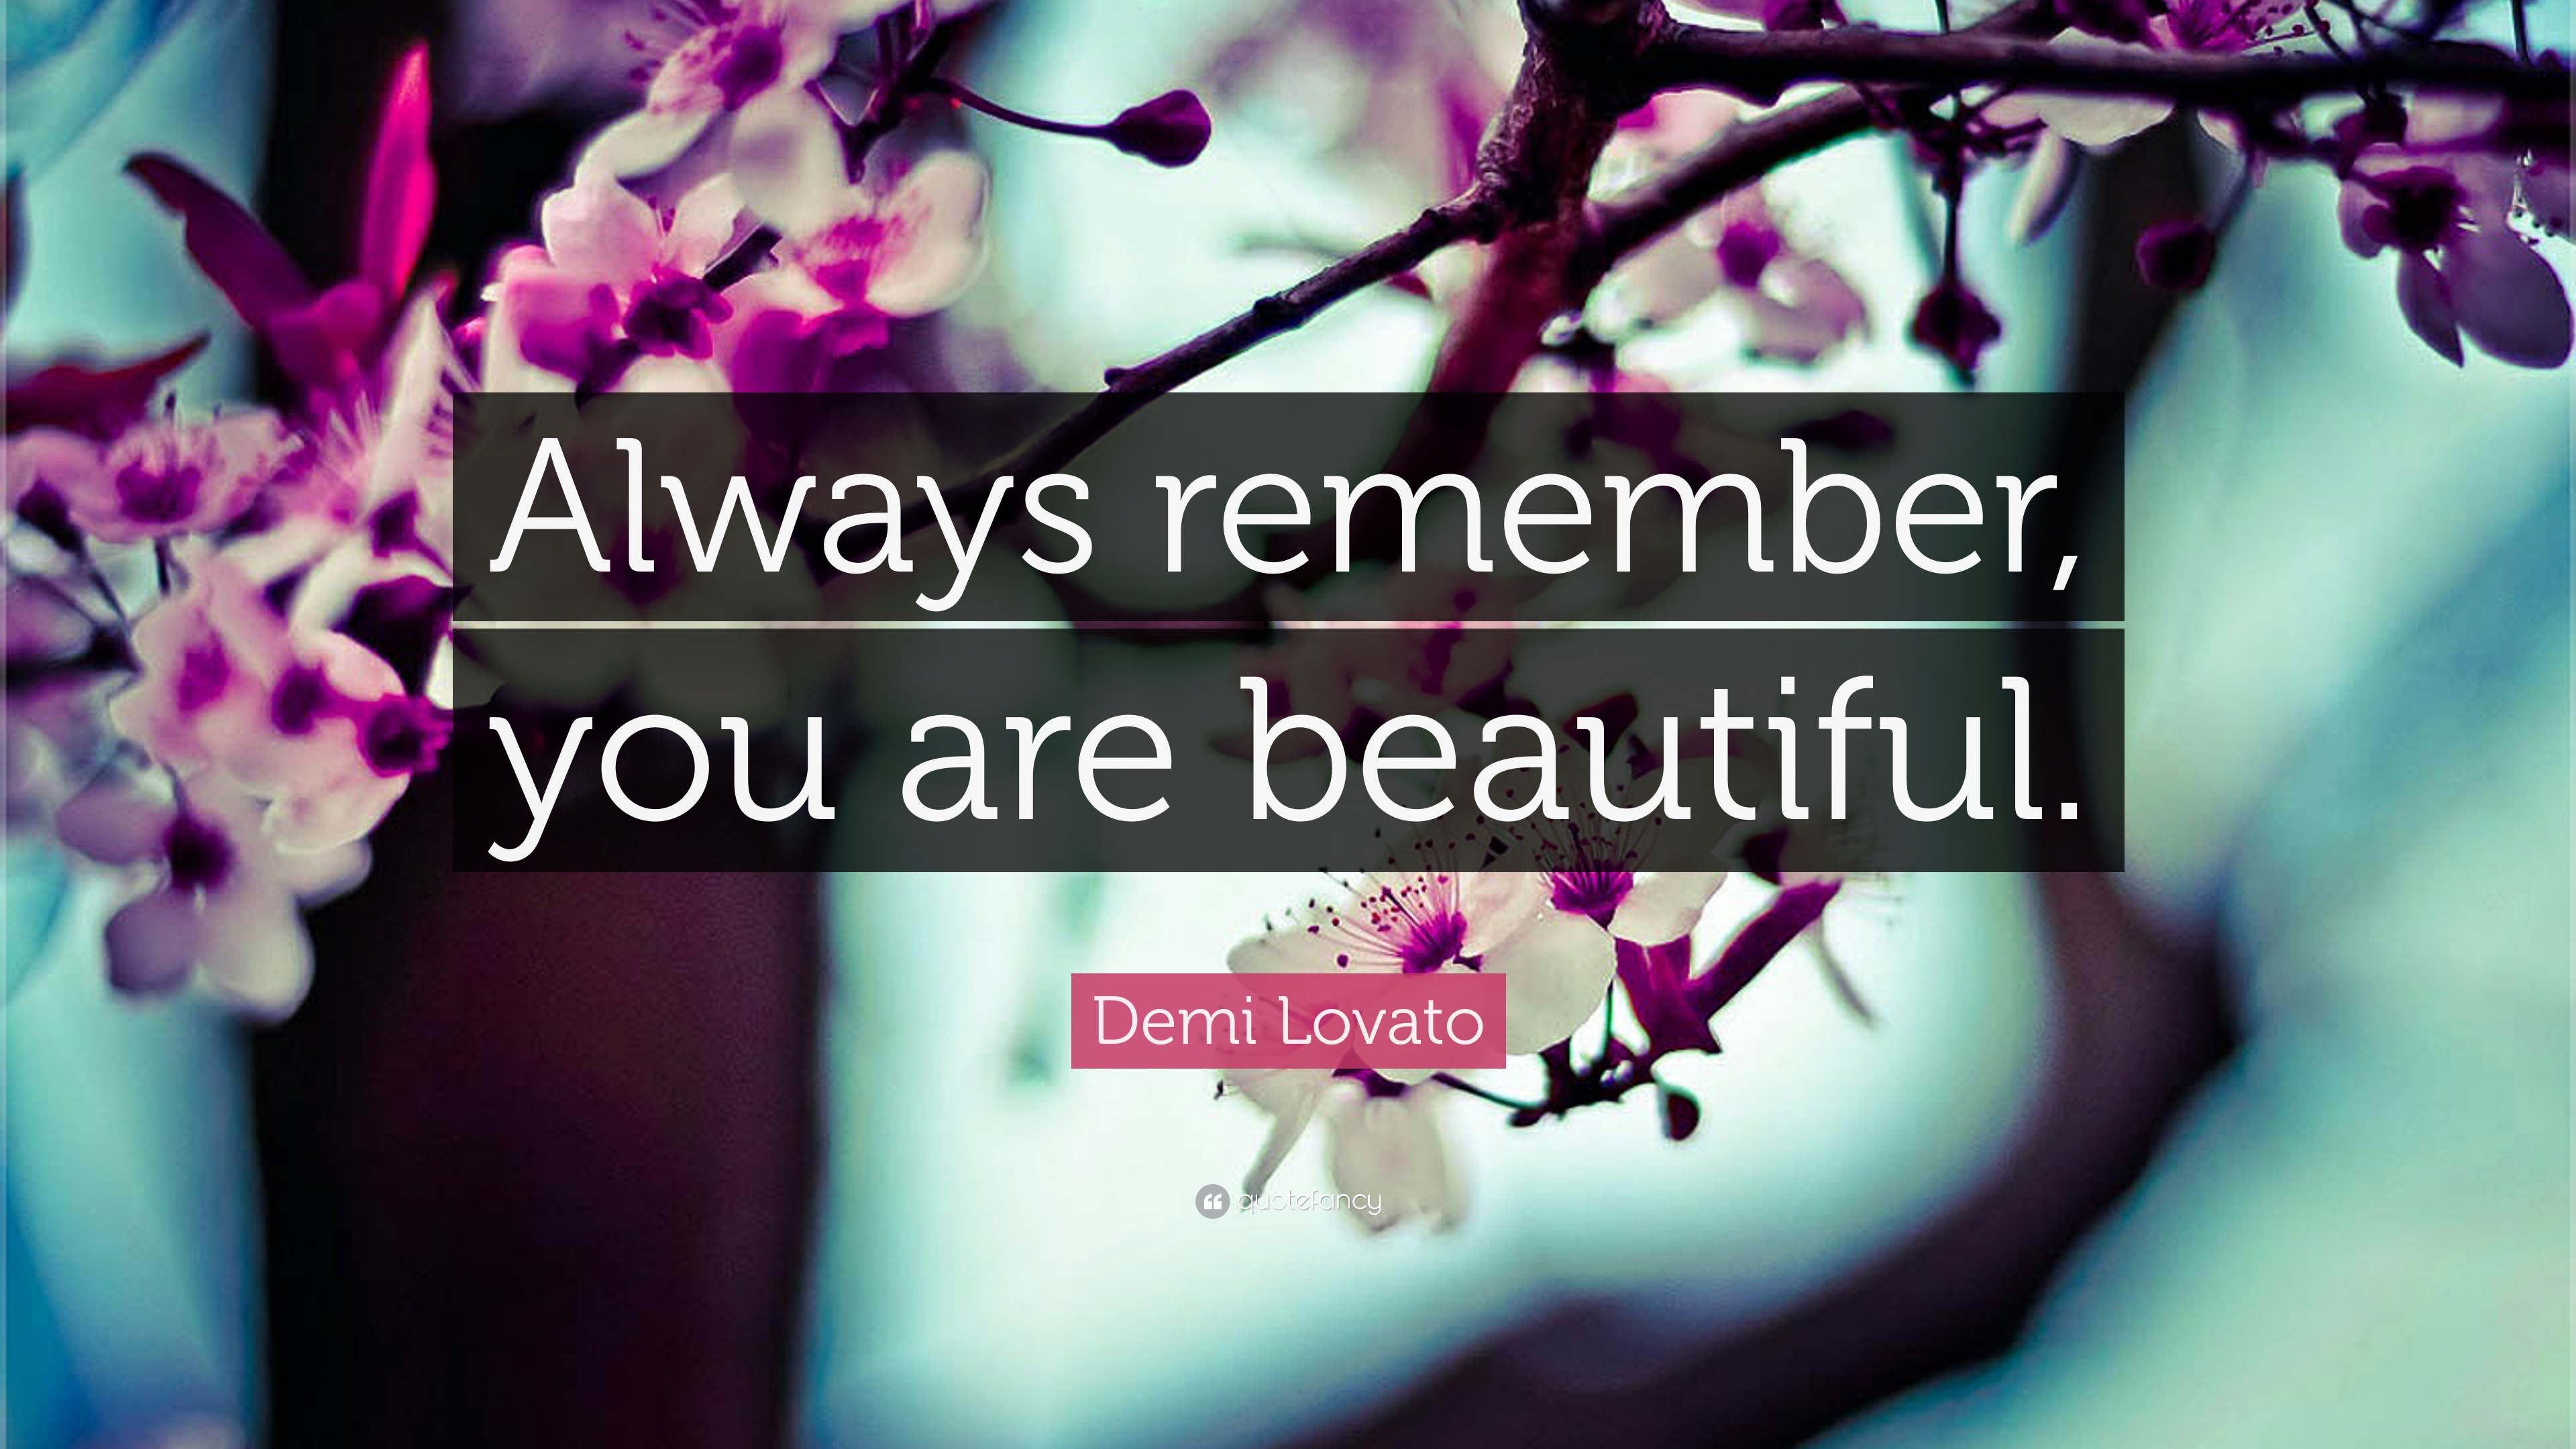 demi lovato quote always remember you are beautiful